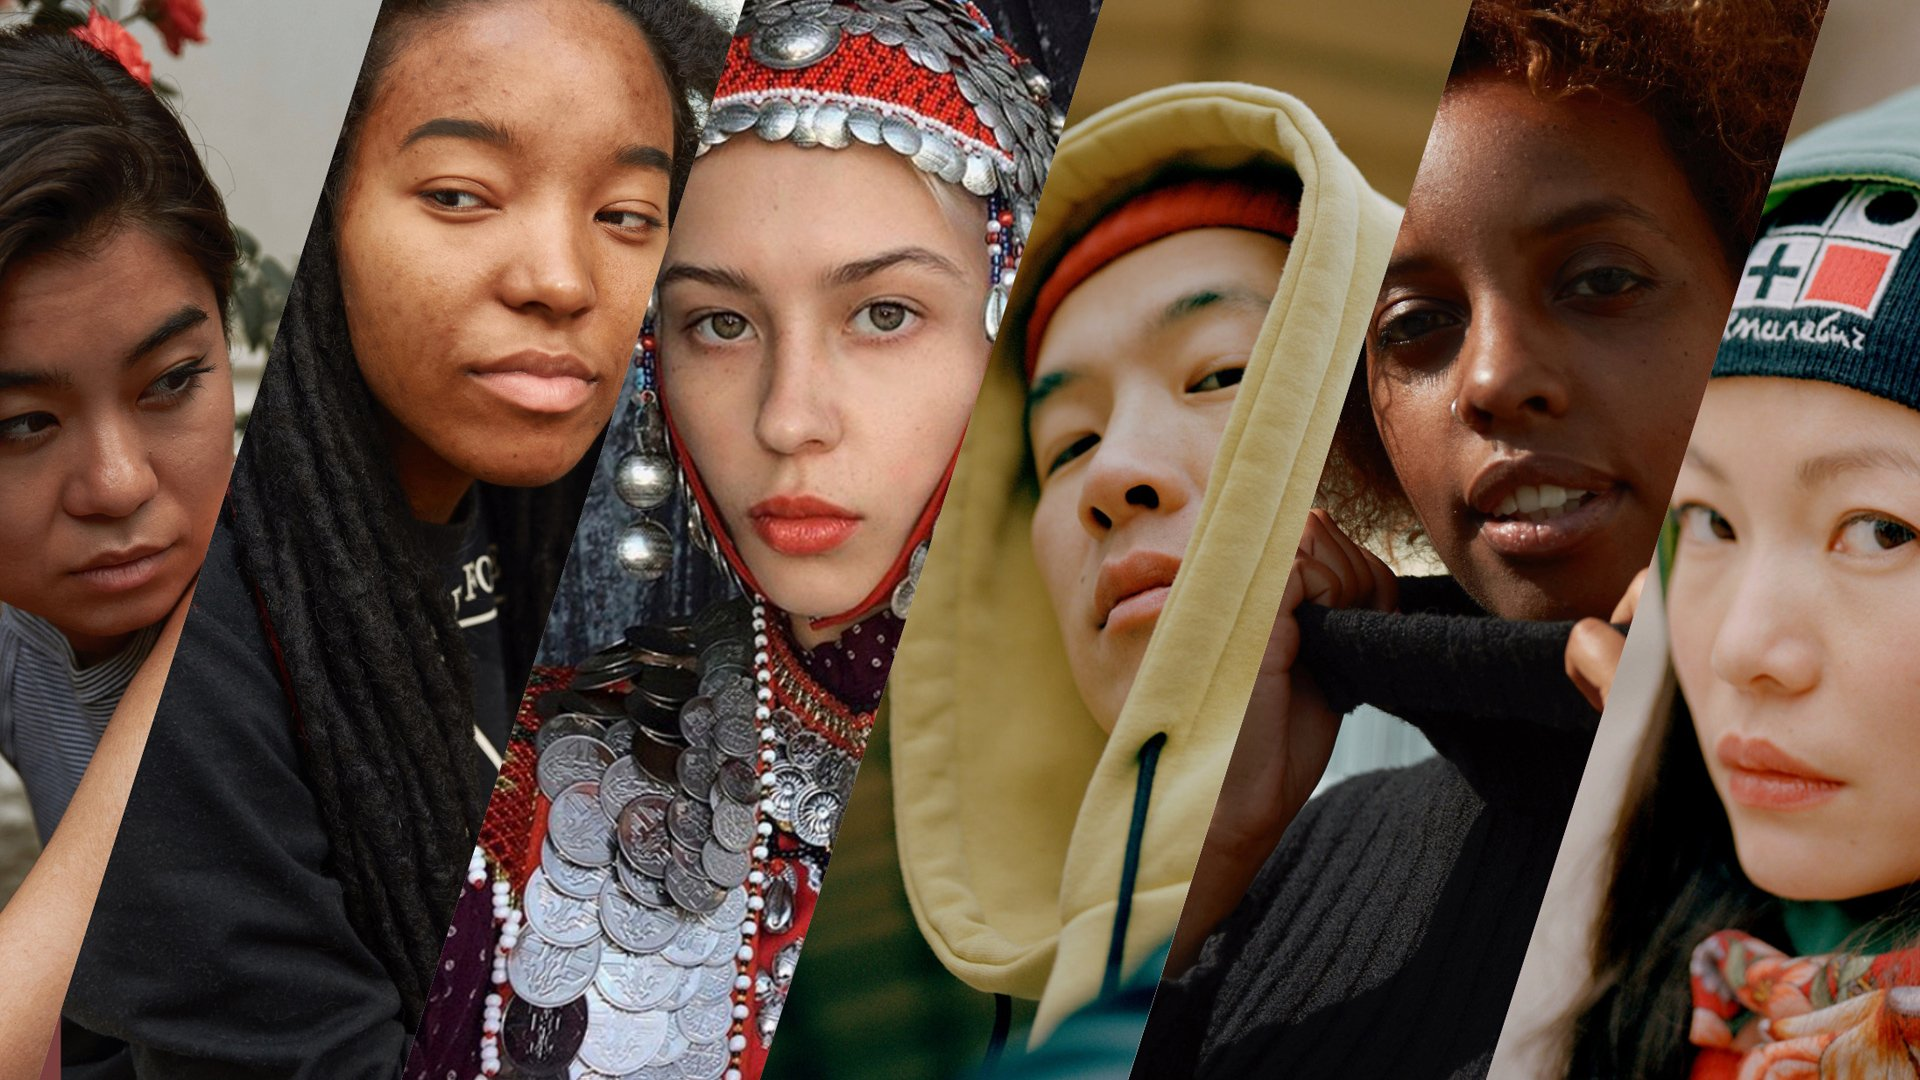 Russia's real face is diverse — and these Gen Z artists want to talk about it